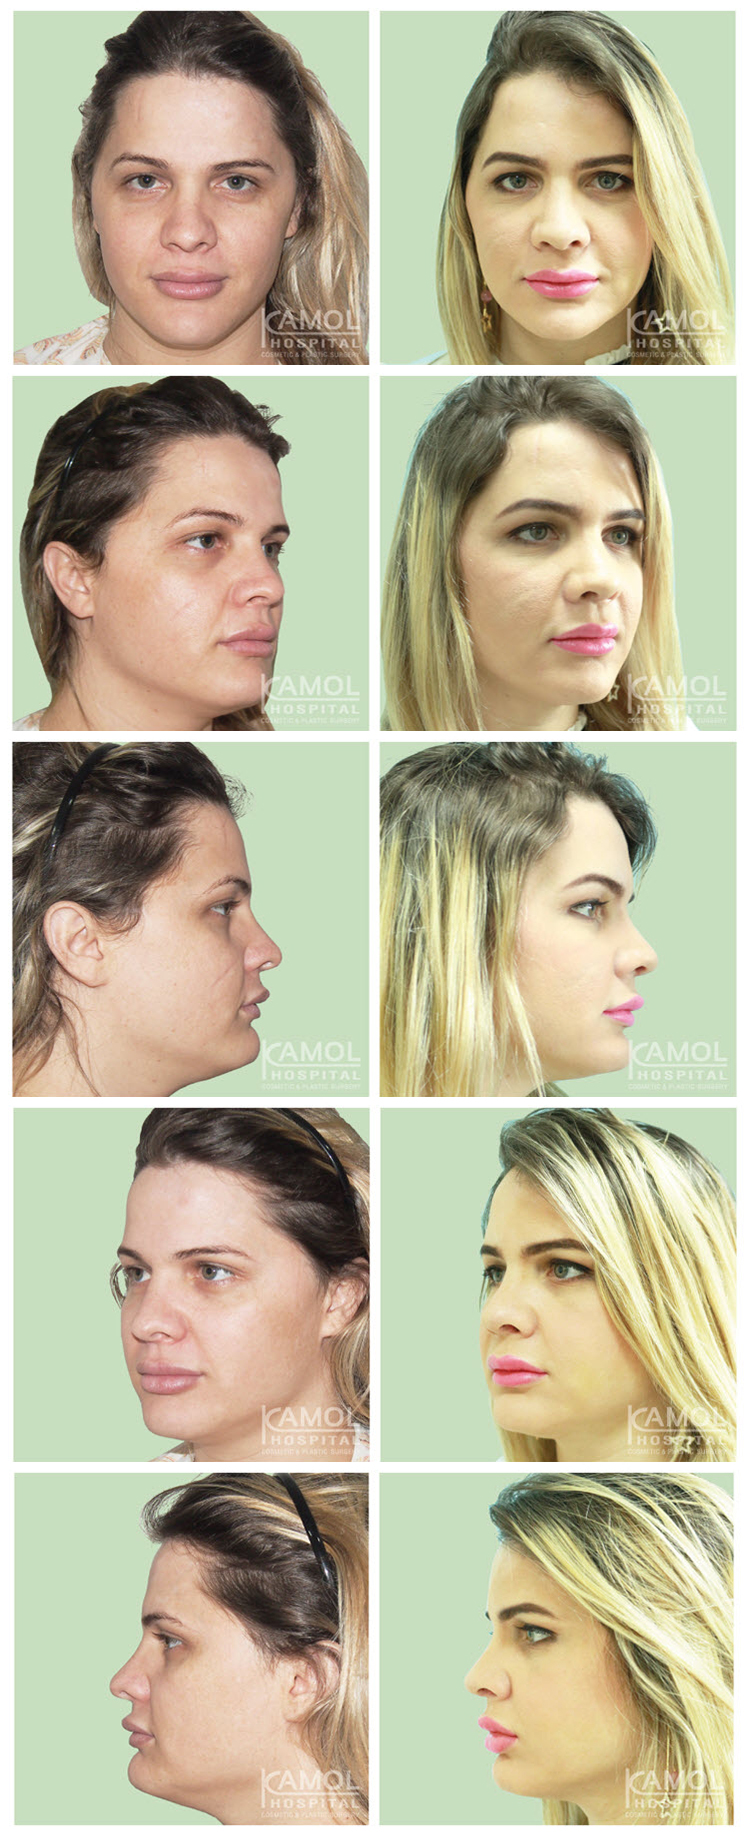 Kamol hospital - Facial Reconstruction Surgery Male to Female